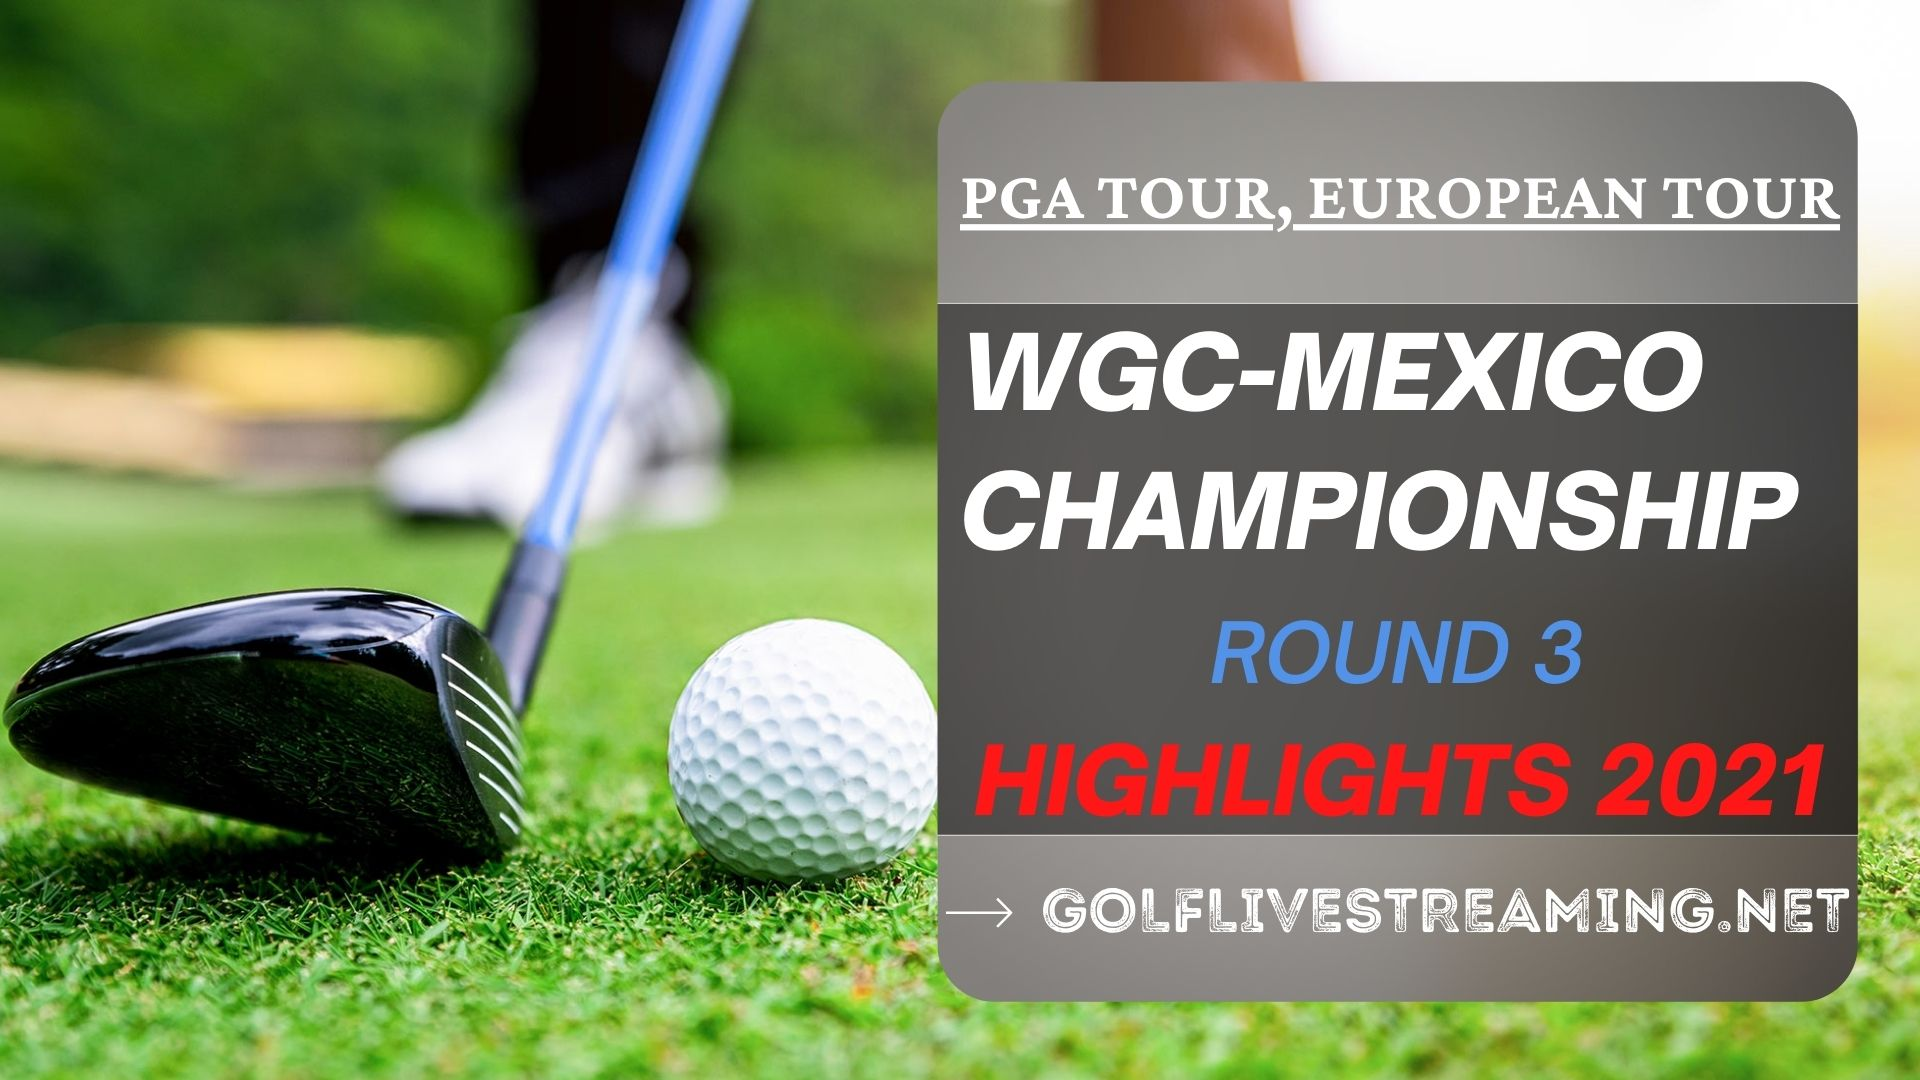 WGC Mexico Championship Rd 3 Highlights 2021 PGA Tour